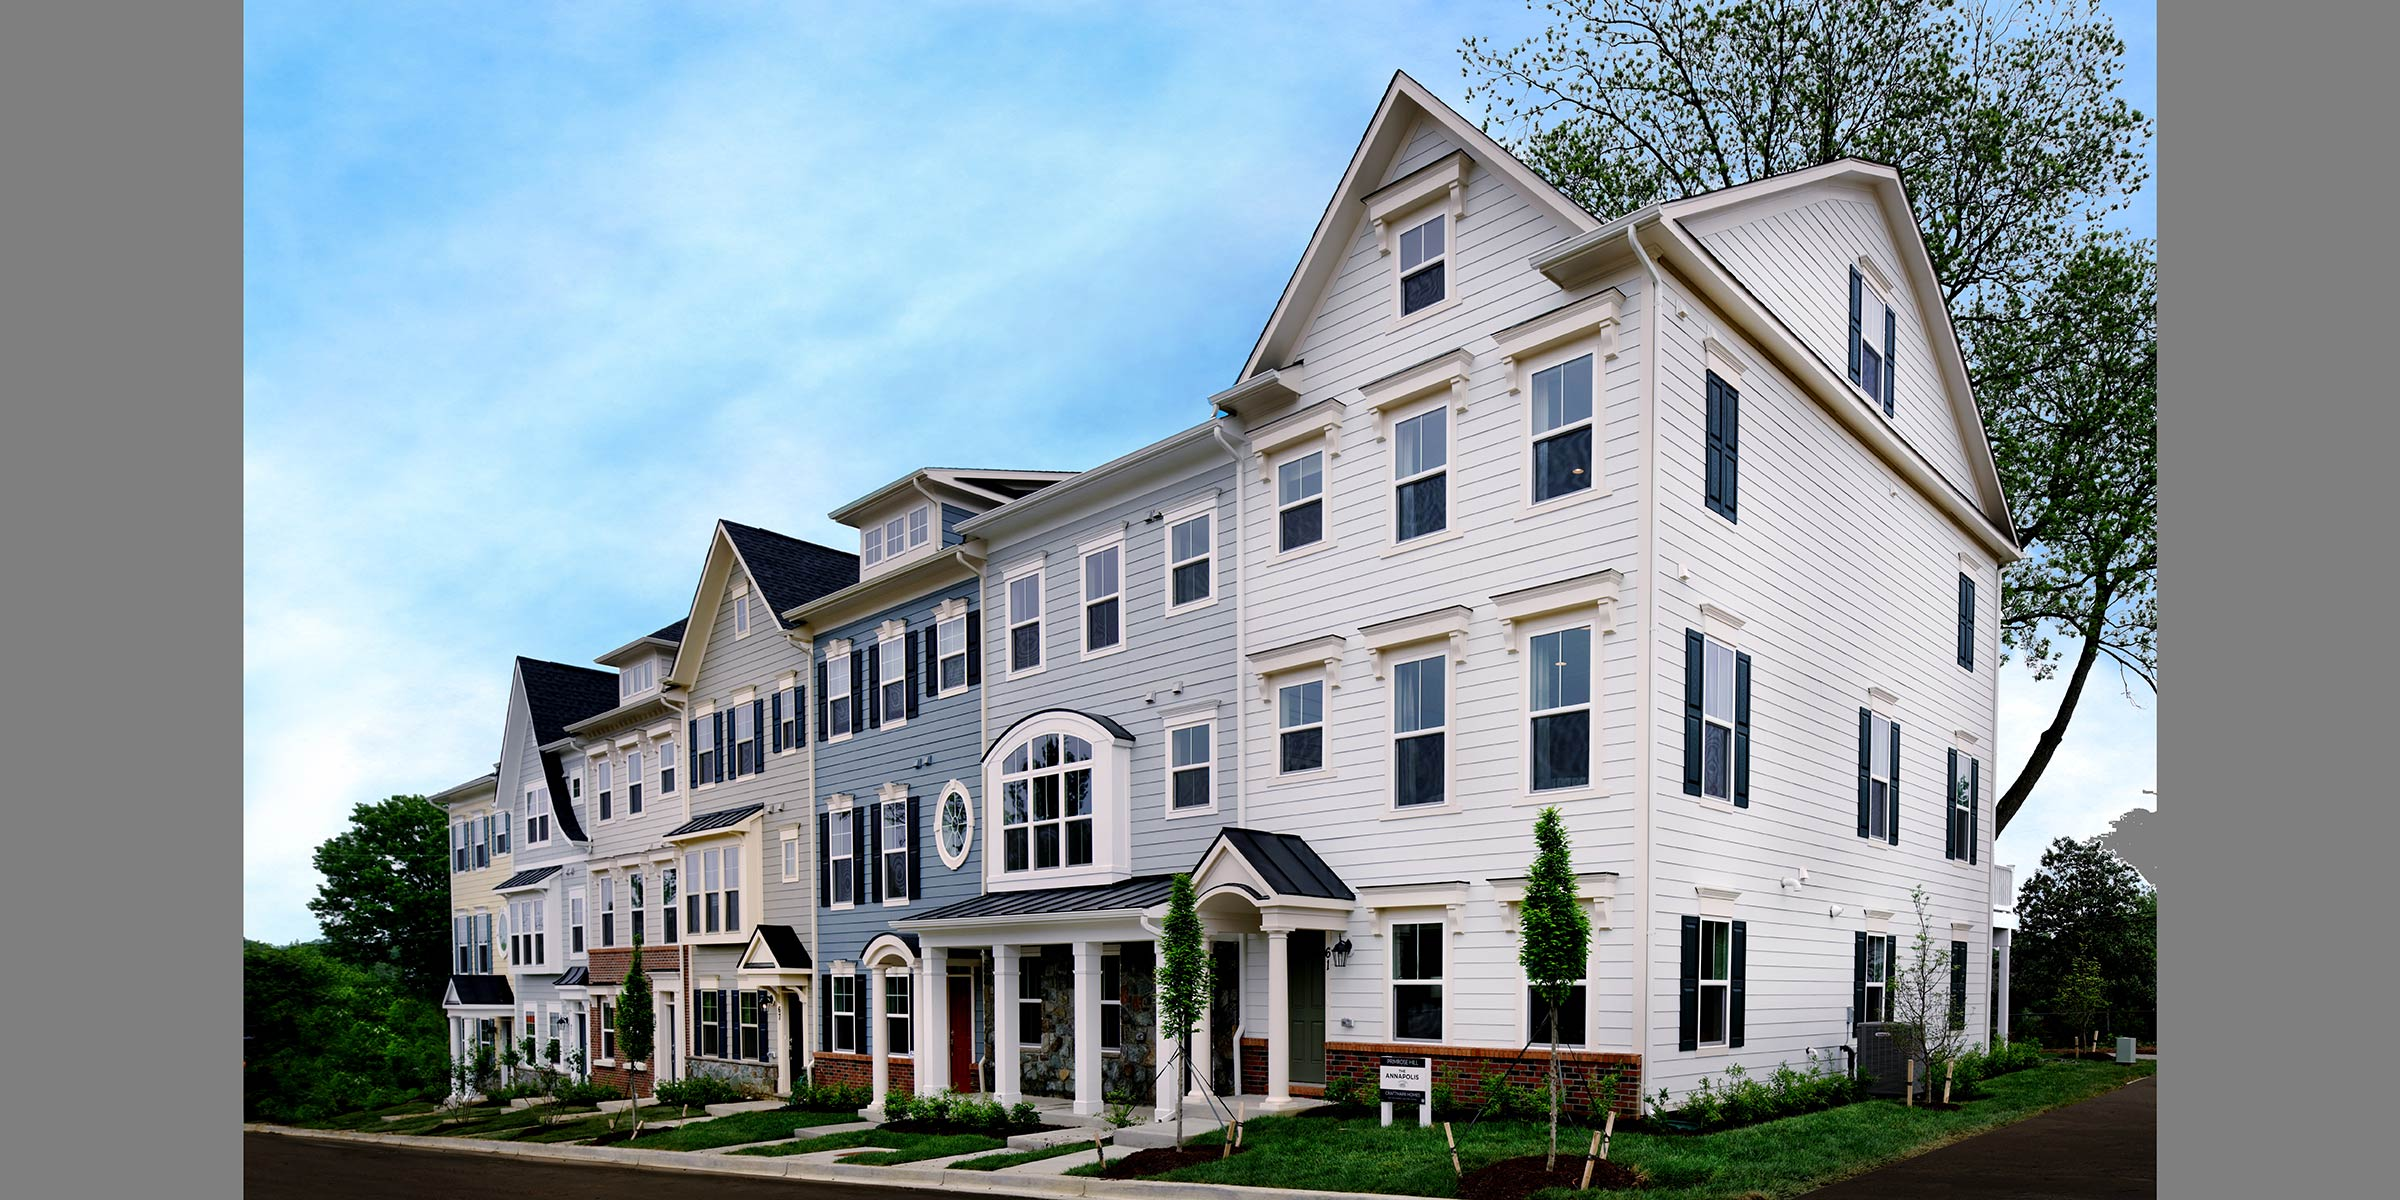 Exteriors, Townhomes in Annapolis MD